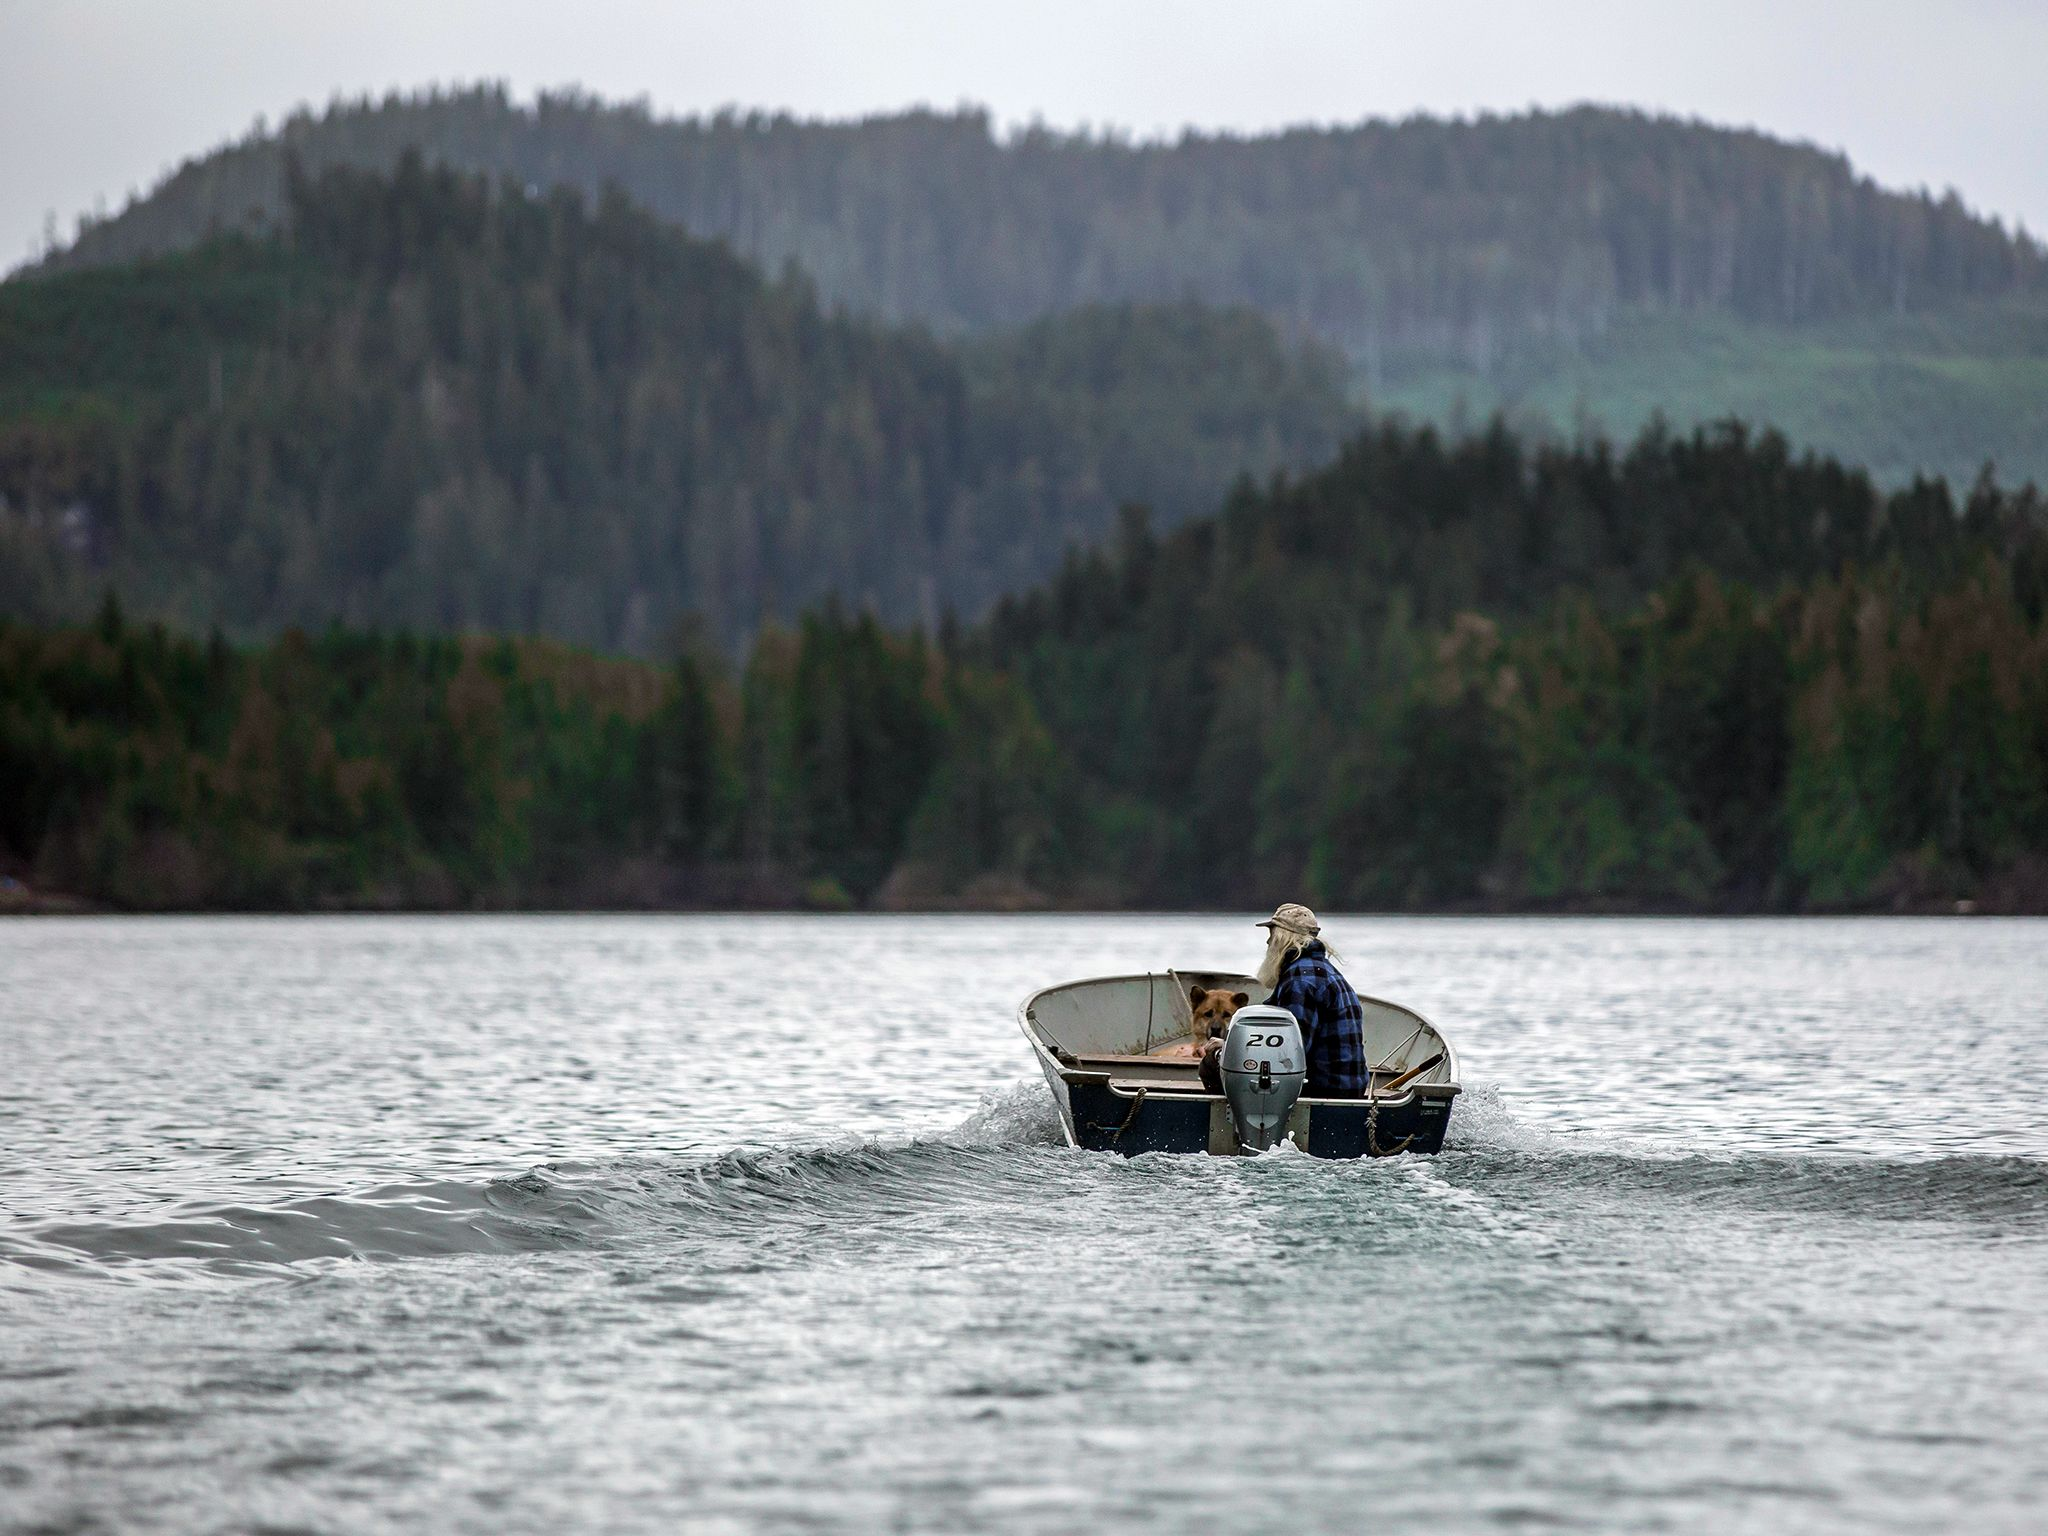 Port Protection, Alaska: Gary drives his boat to the place where he wants to forage for clams.... [Photo of the day - 十一月 2015]